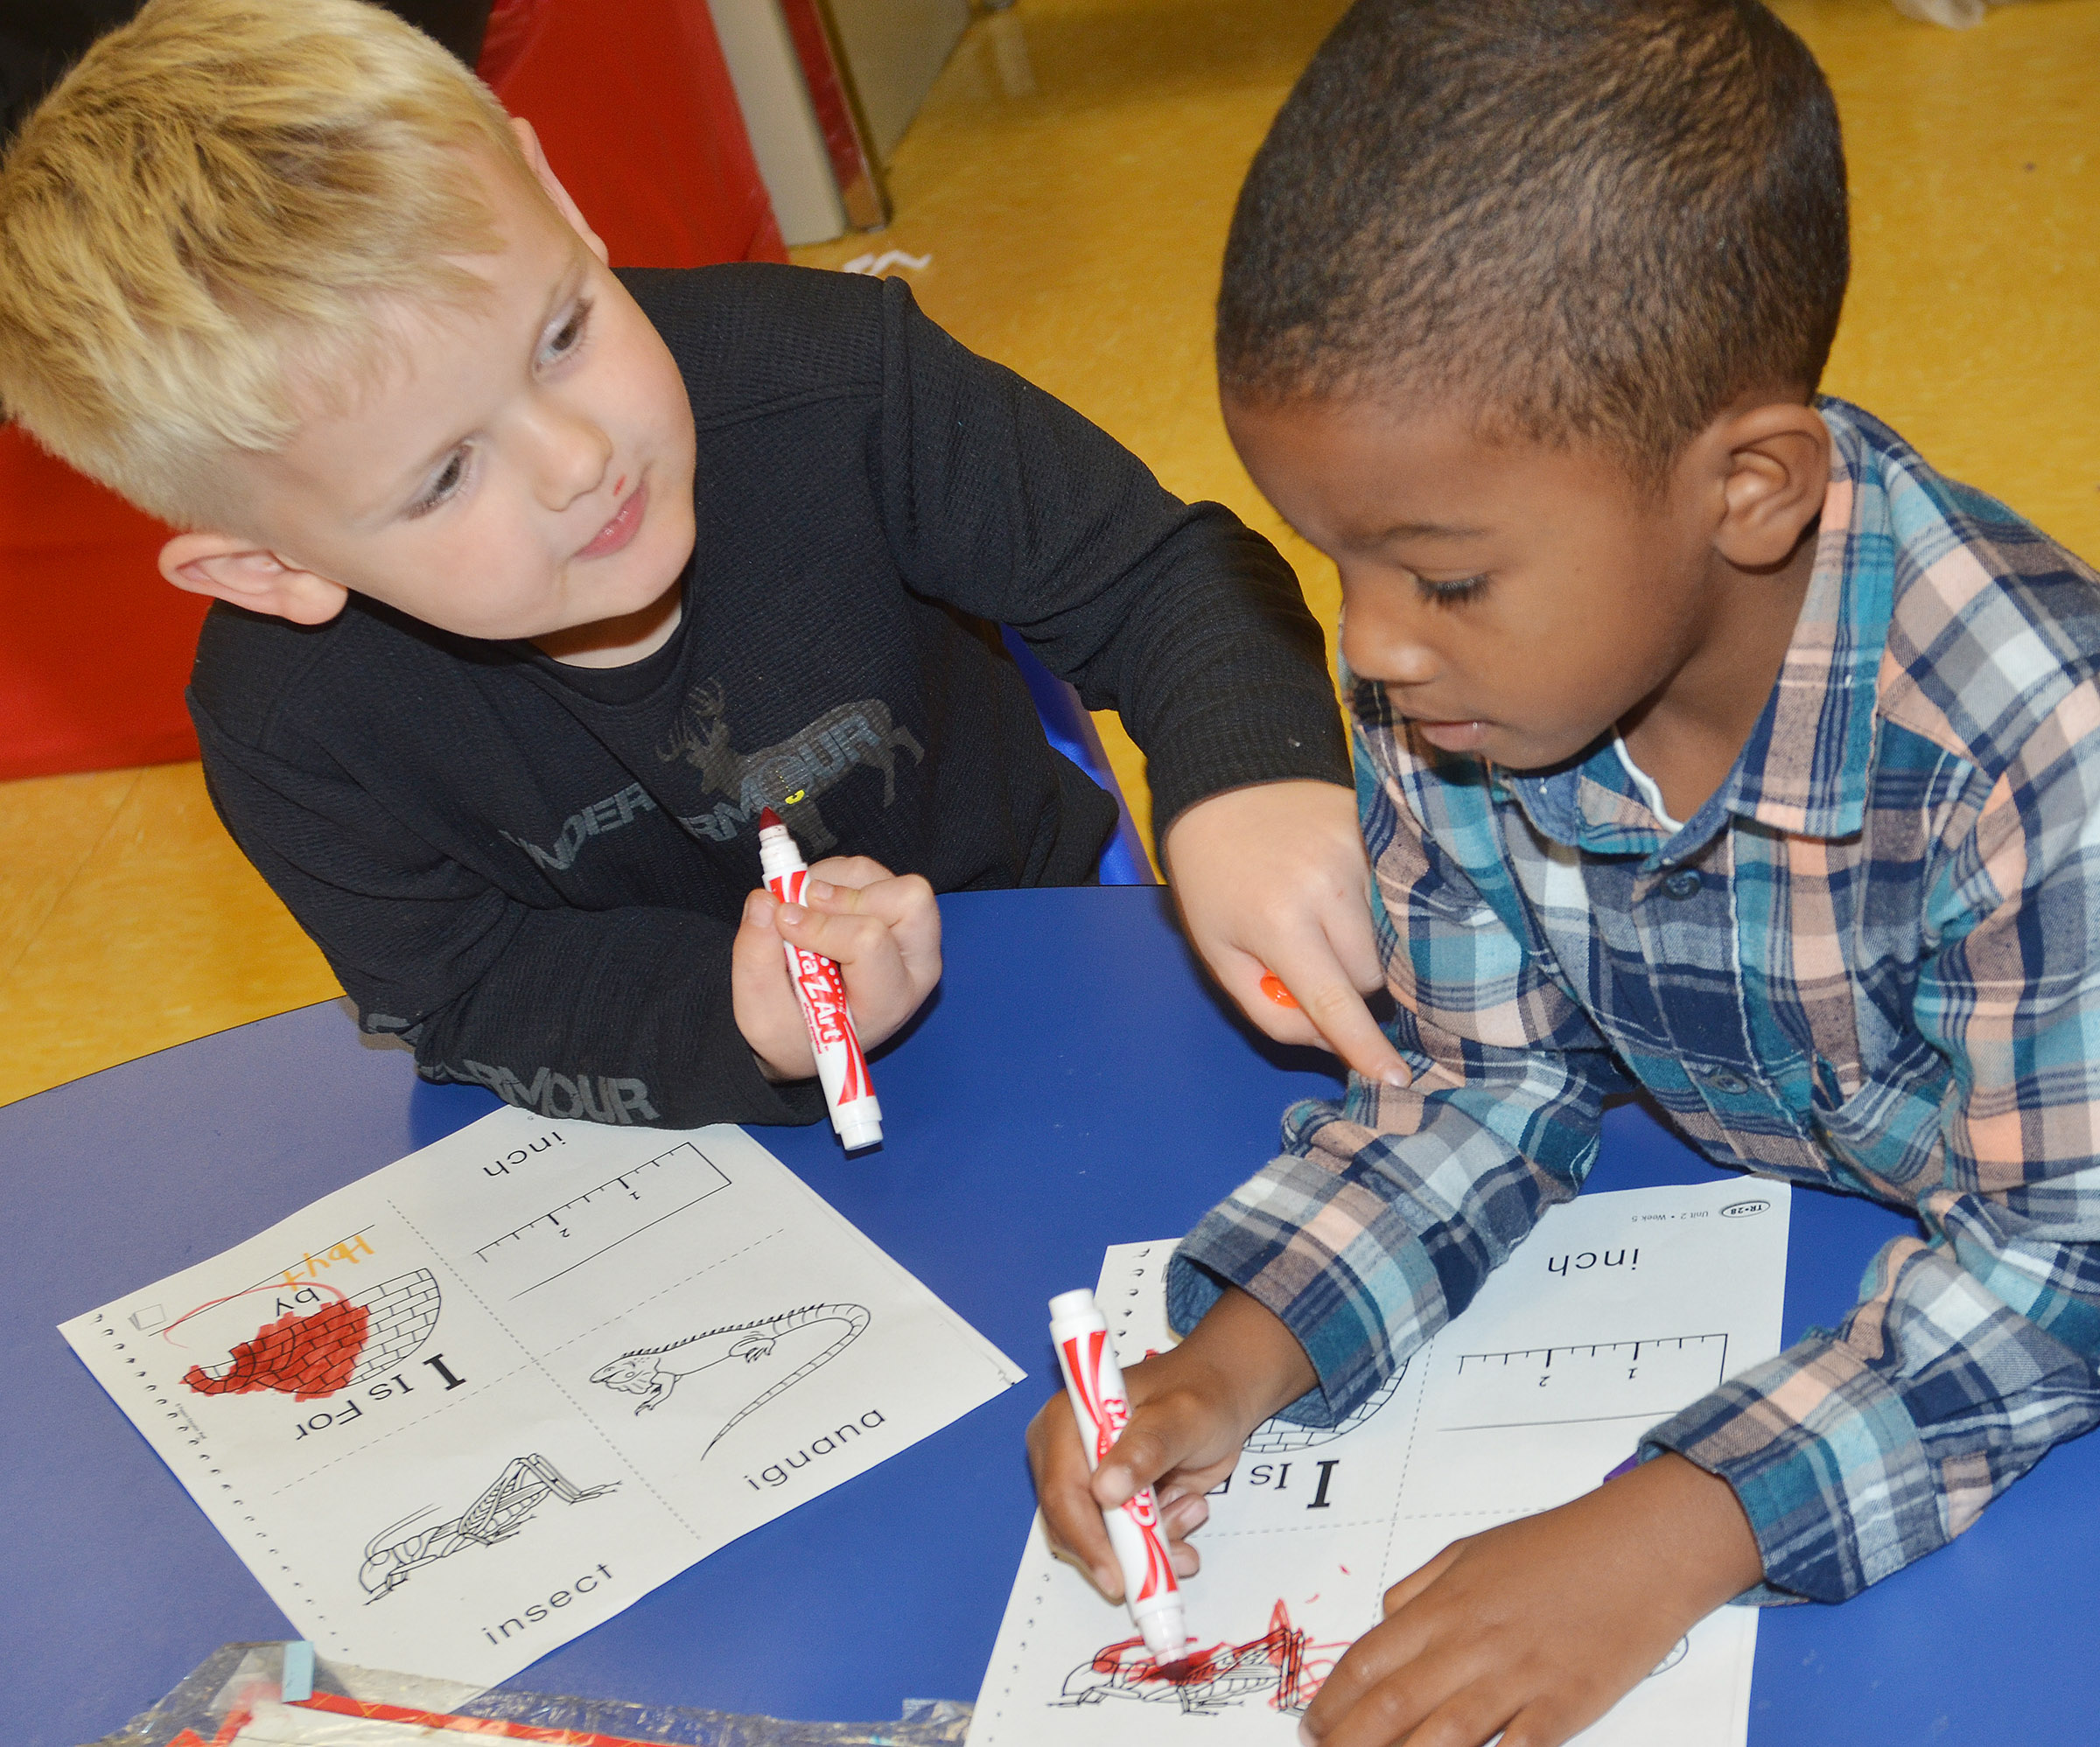 CES preschool students Hoyt Davis, at left, and Rakim Dunn color their worksheets containing words that start with I.